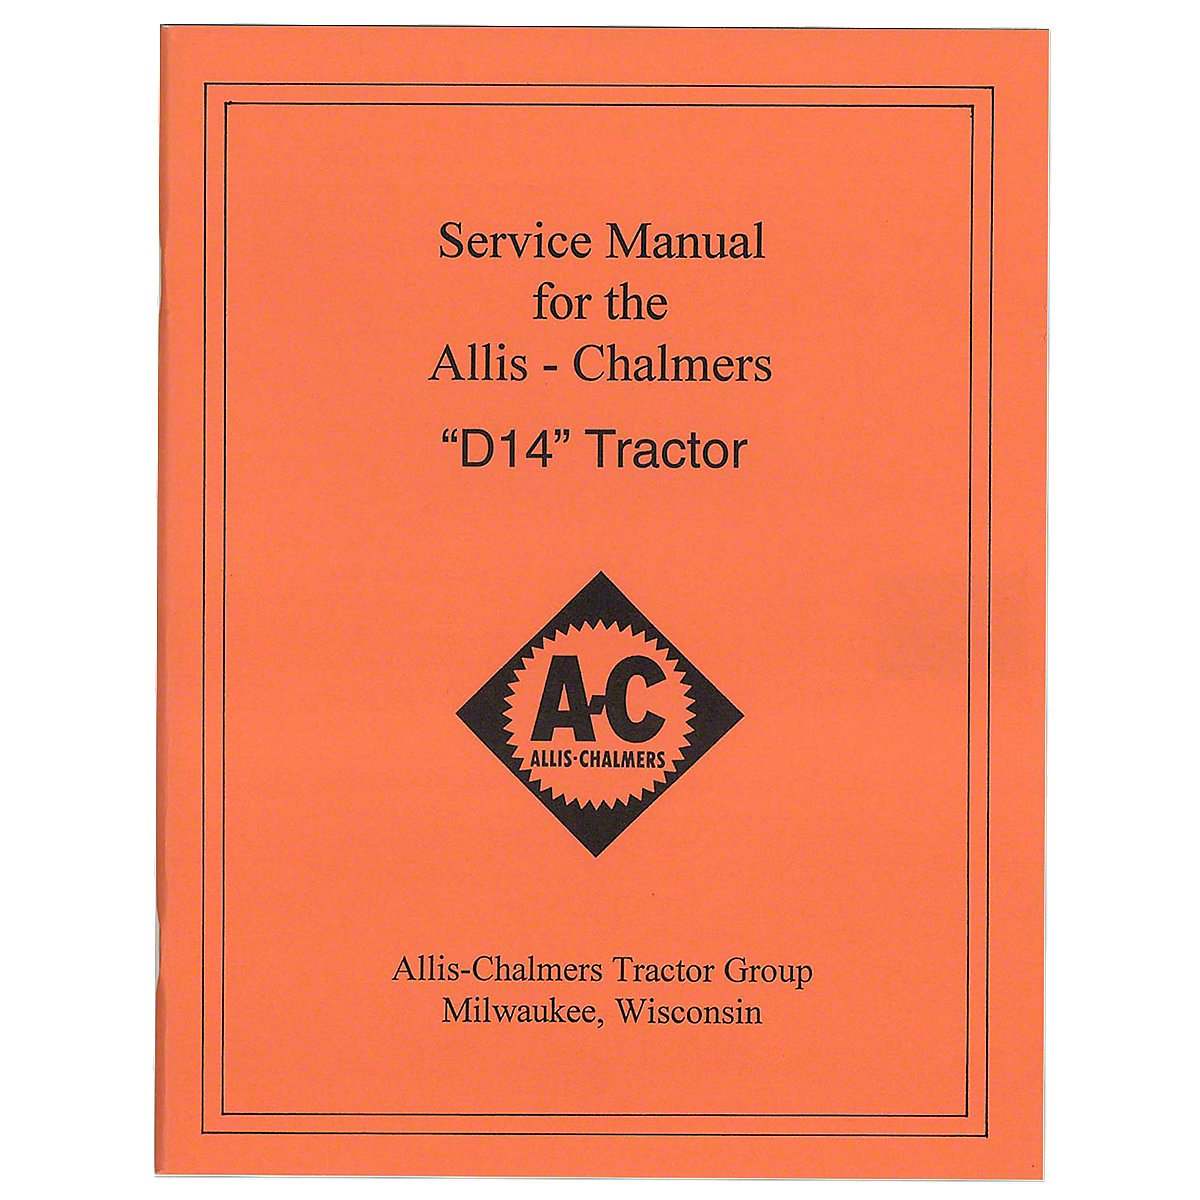 s7d2.scene7.com/is/image/SteinerTractor/REP094?$lg... Wiring Diagram For Allis Chalmers D on allis chalmers d14 wiring chart, allis chalmers ca wiring diagram, john deere b wiring diagram, allis chalmers 7000 wiring diagram, allis chalmers wd electric diagram, allis chalmers c wiring diagram, allis chalmers d14 transmission diagram, allis chalmers b10 wiring diagram, allis chalmers d10 wiring diagram, allis chalmers d14 parts diagram, allis chalmers wc wiring diagram, allis chalmers d15 wiring diagram,